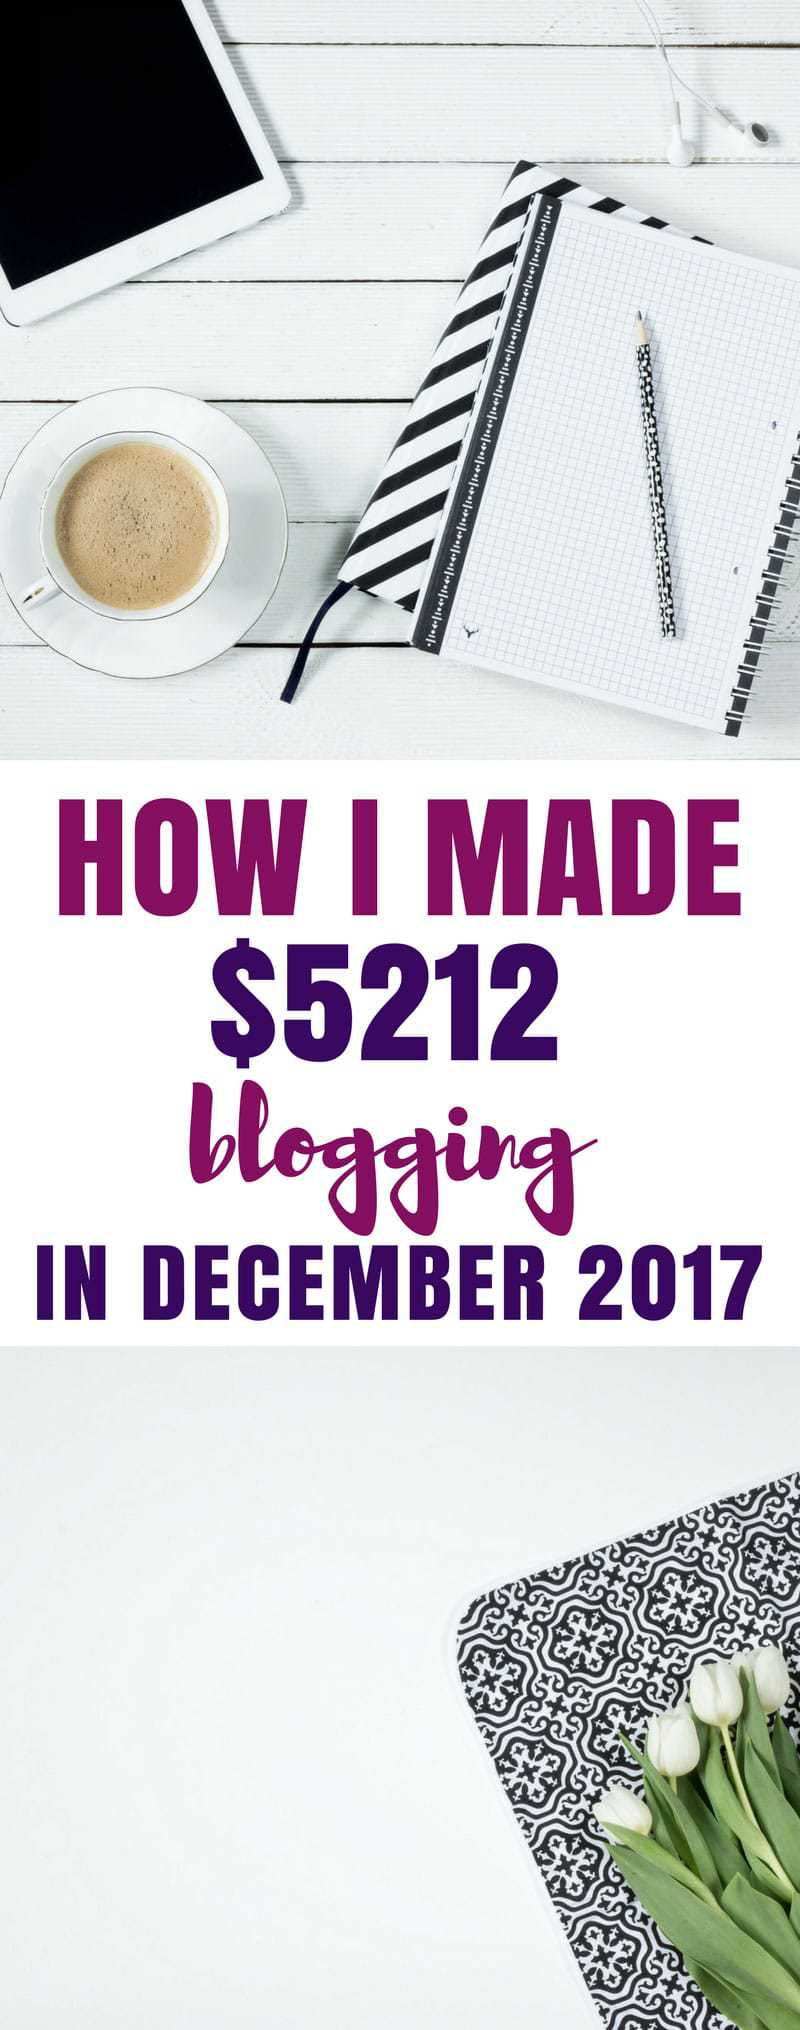 Blog Income Report - Find out how one blogger earned $5212 in one month without sponsored posts or her own product! #blogging #incomereport